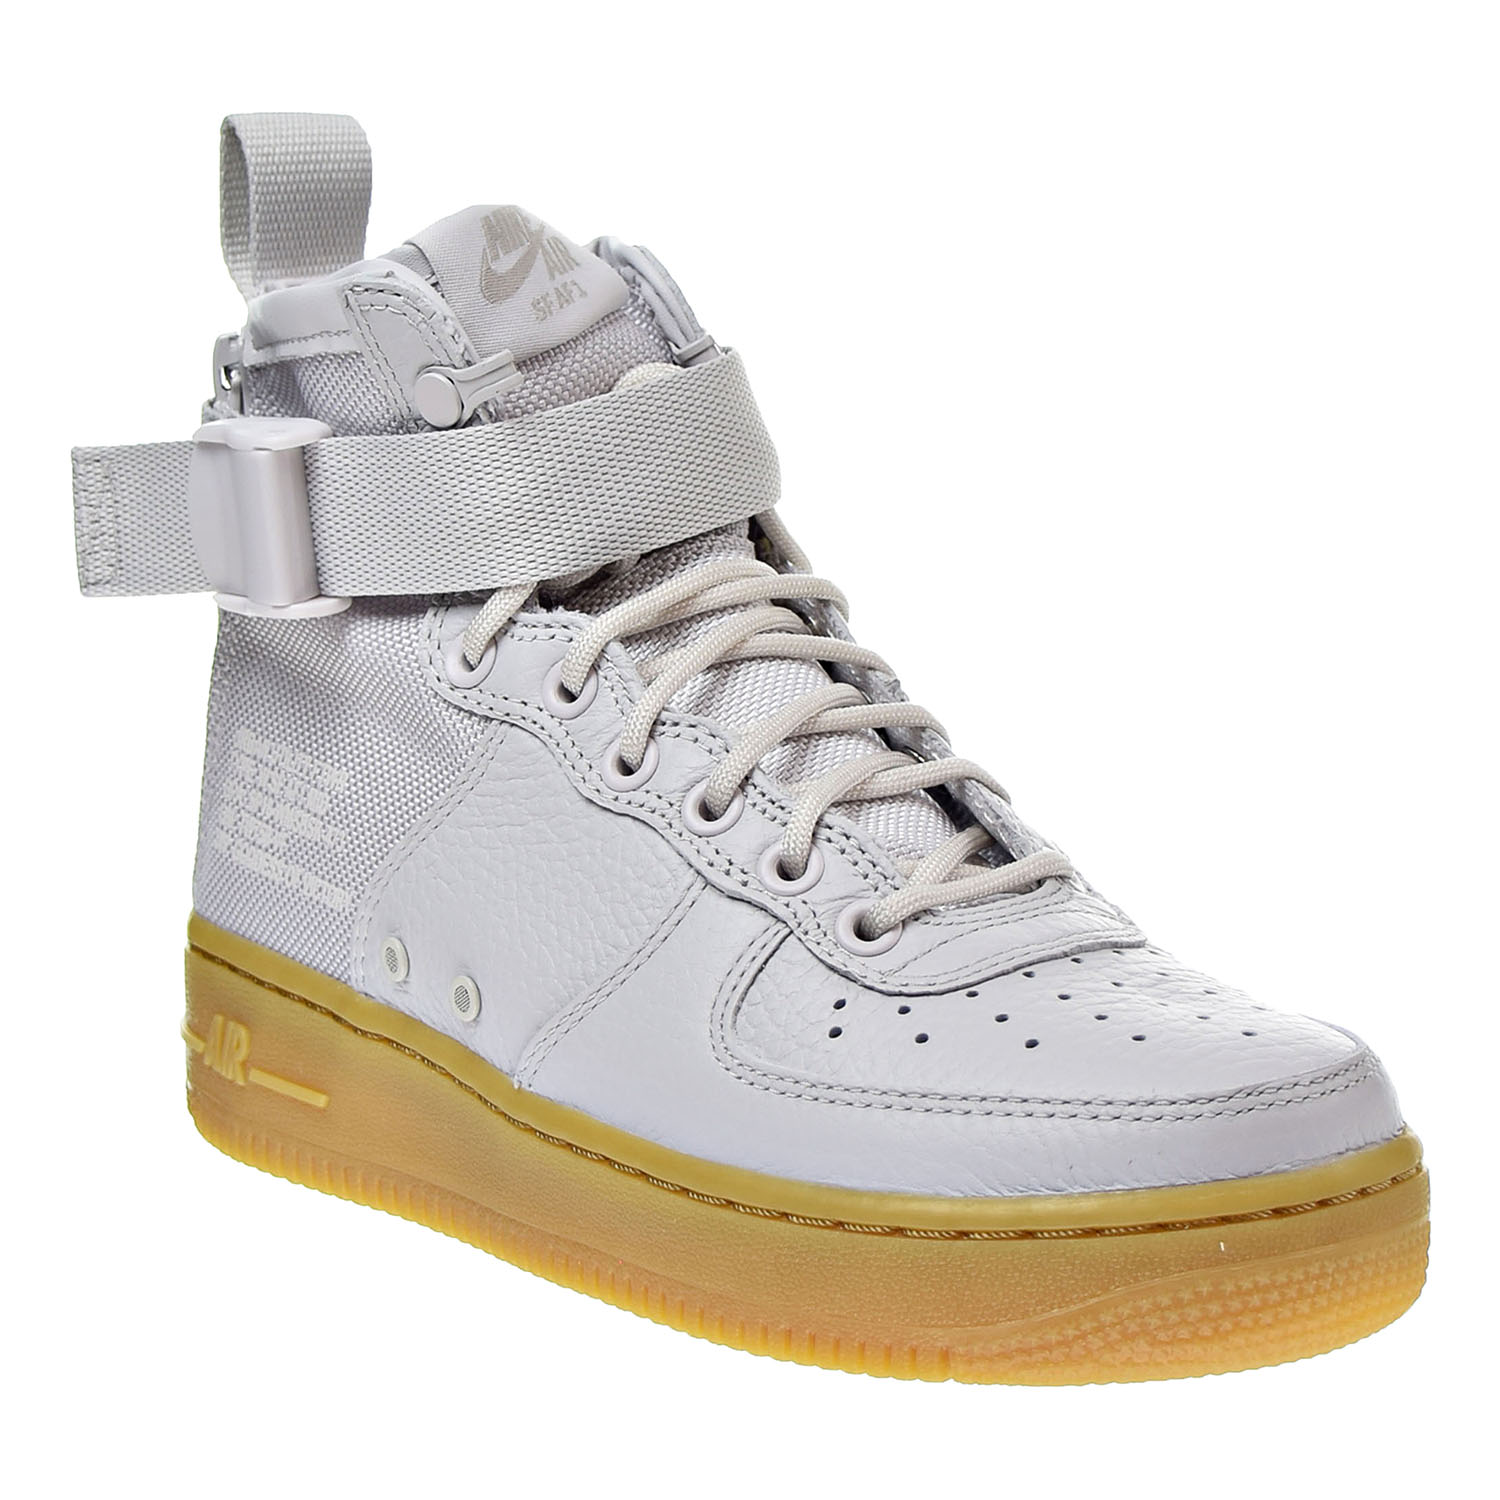 Nike Sf Air Force 1 Mid Women's Shoes